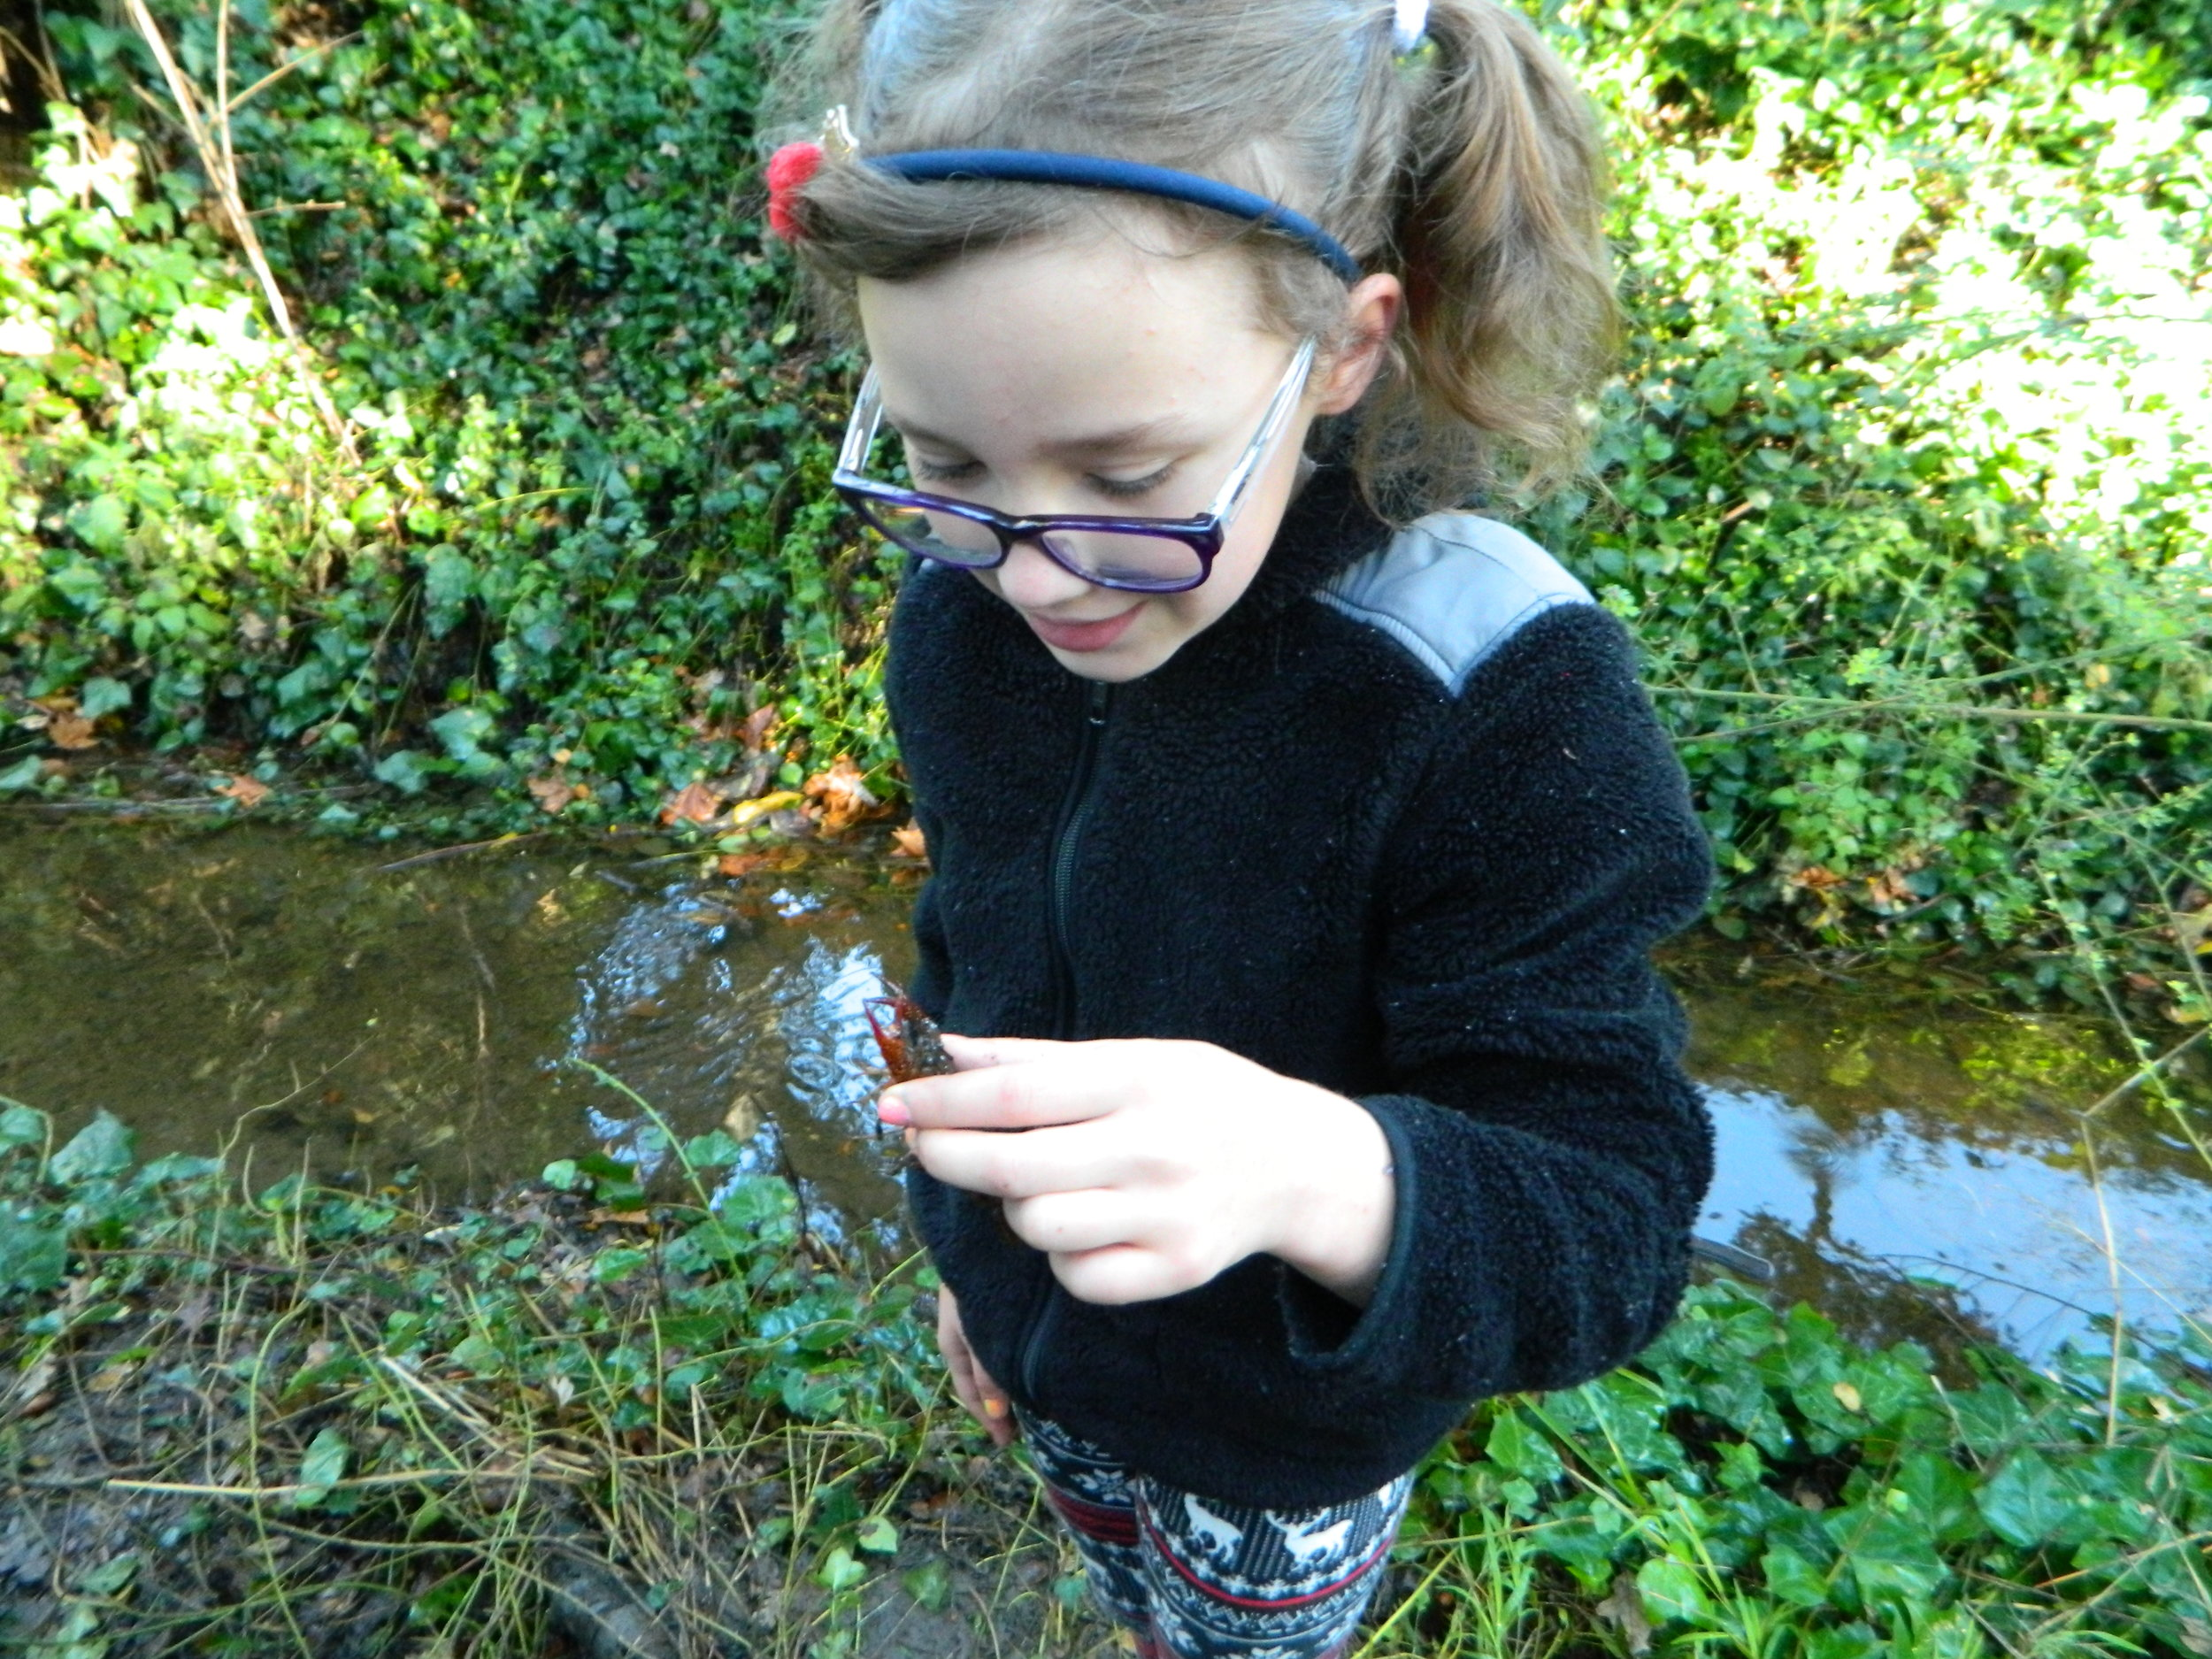 A student holds a cray fish up for classmates to see.